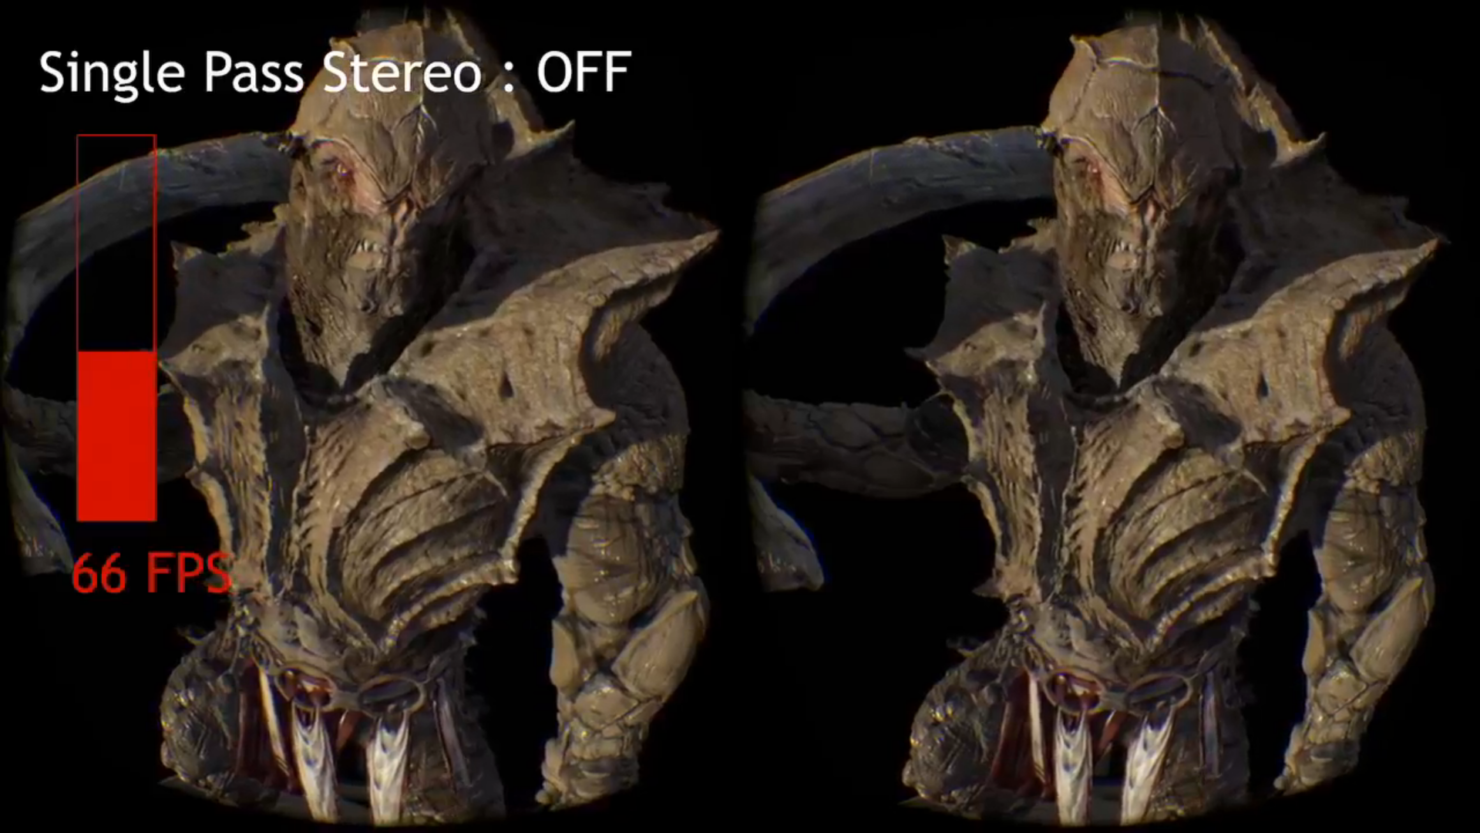 single-pass-stereo-off-2